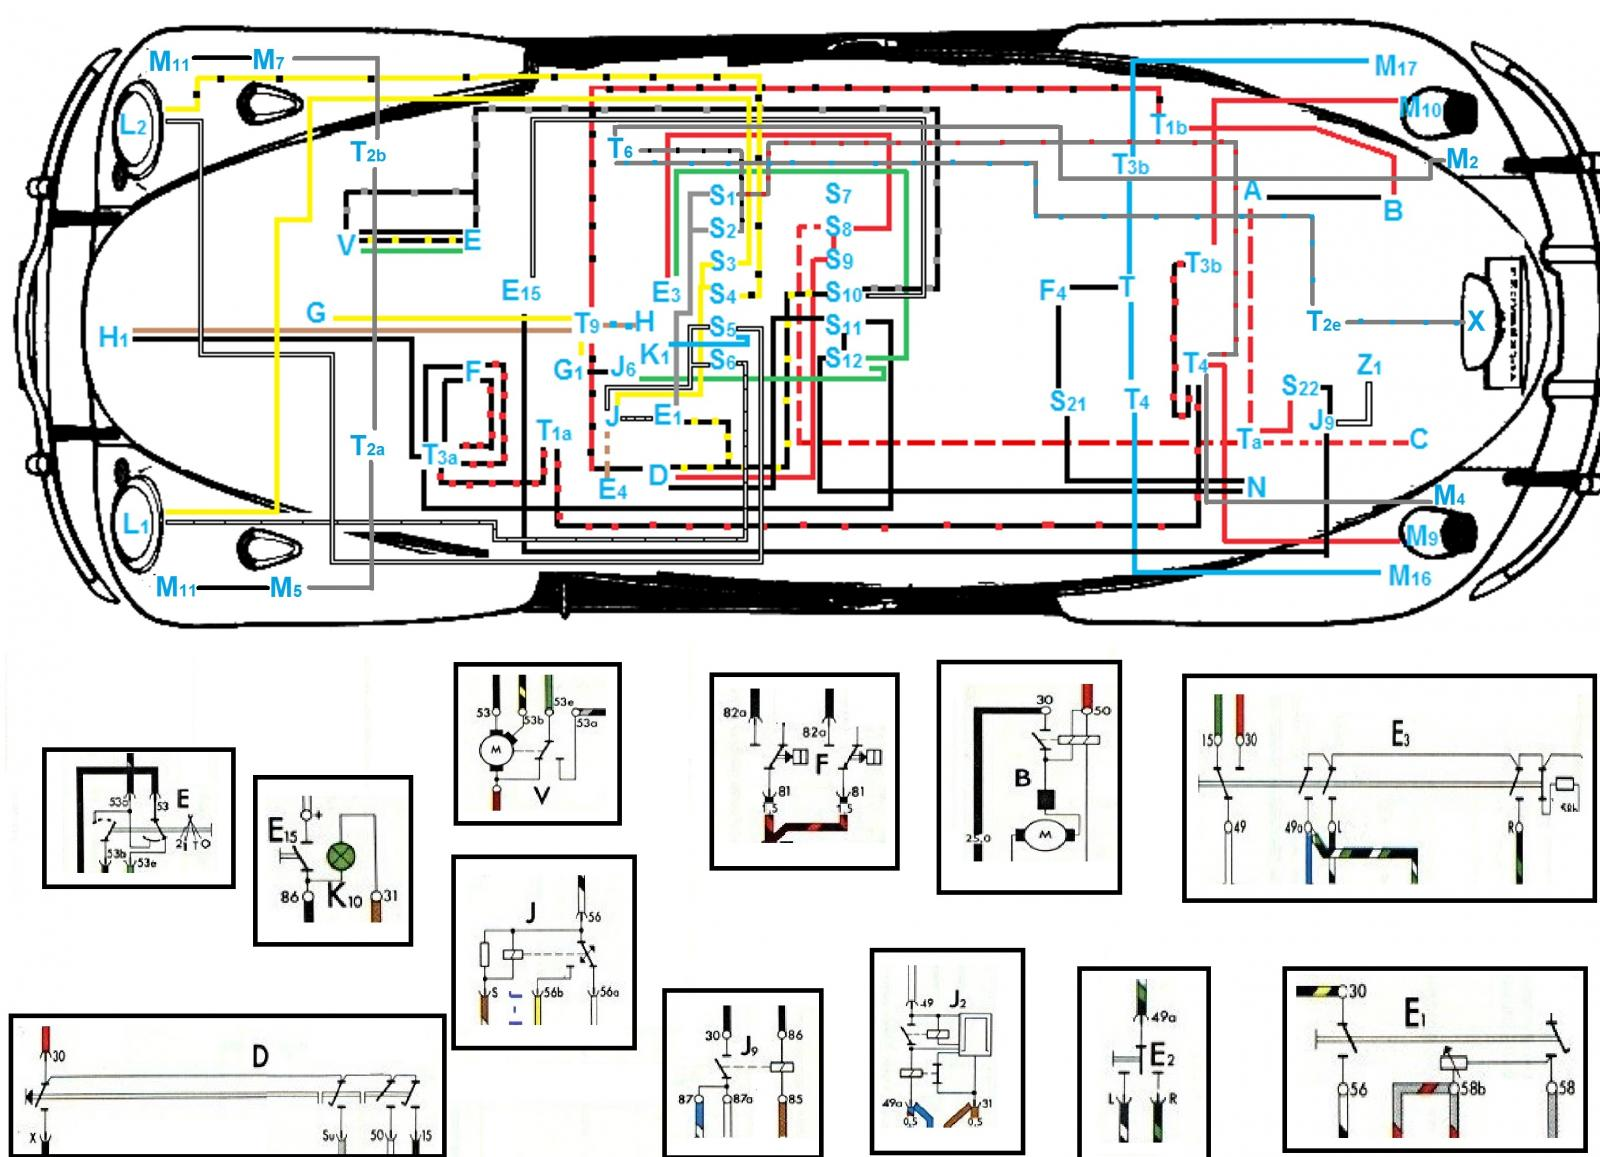 thesamba com beetle late model super 1968 up view topic rh thesamba com 2001 vw beetle wiring diagram for 4 wire fan 2000 vw beetle wiring problems